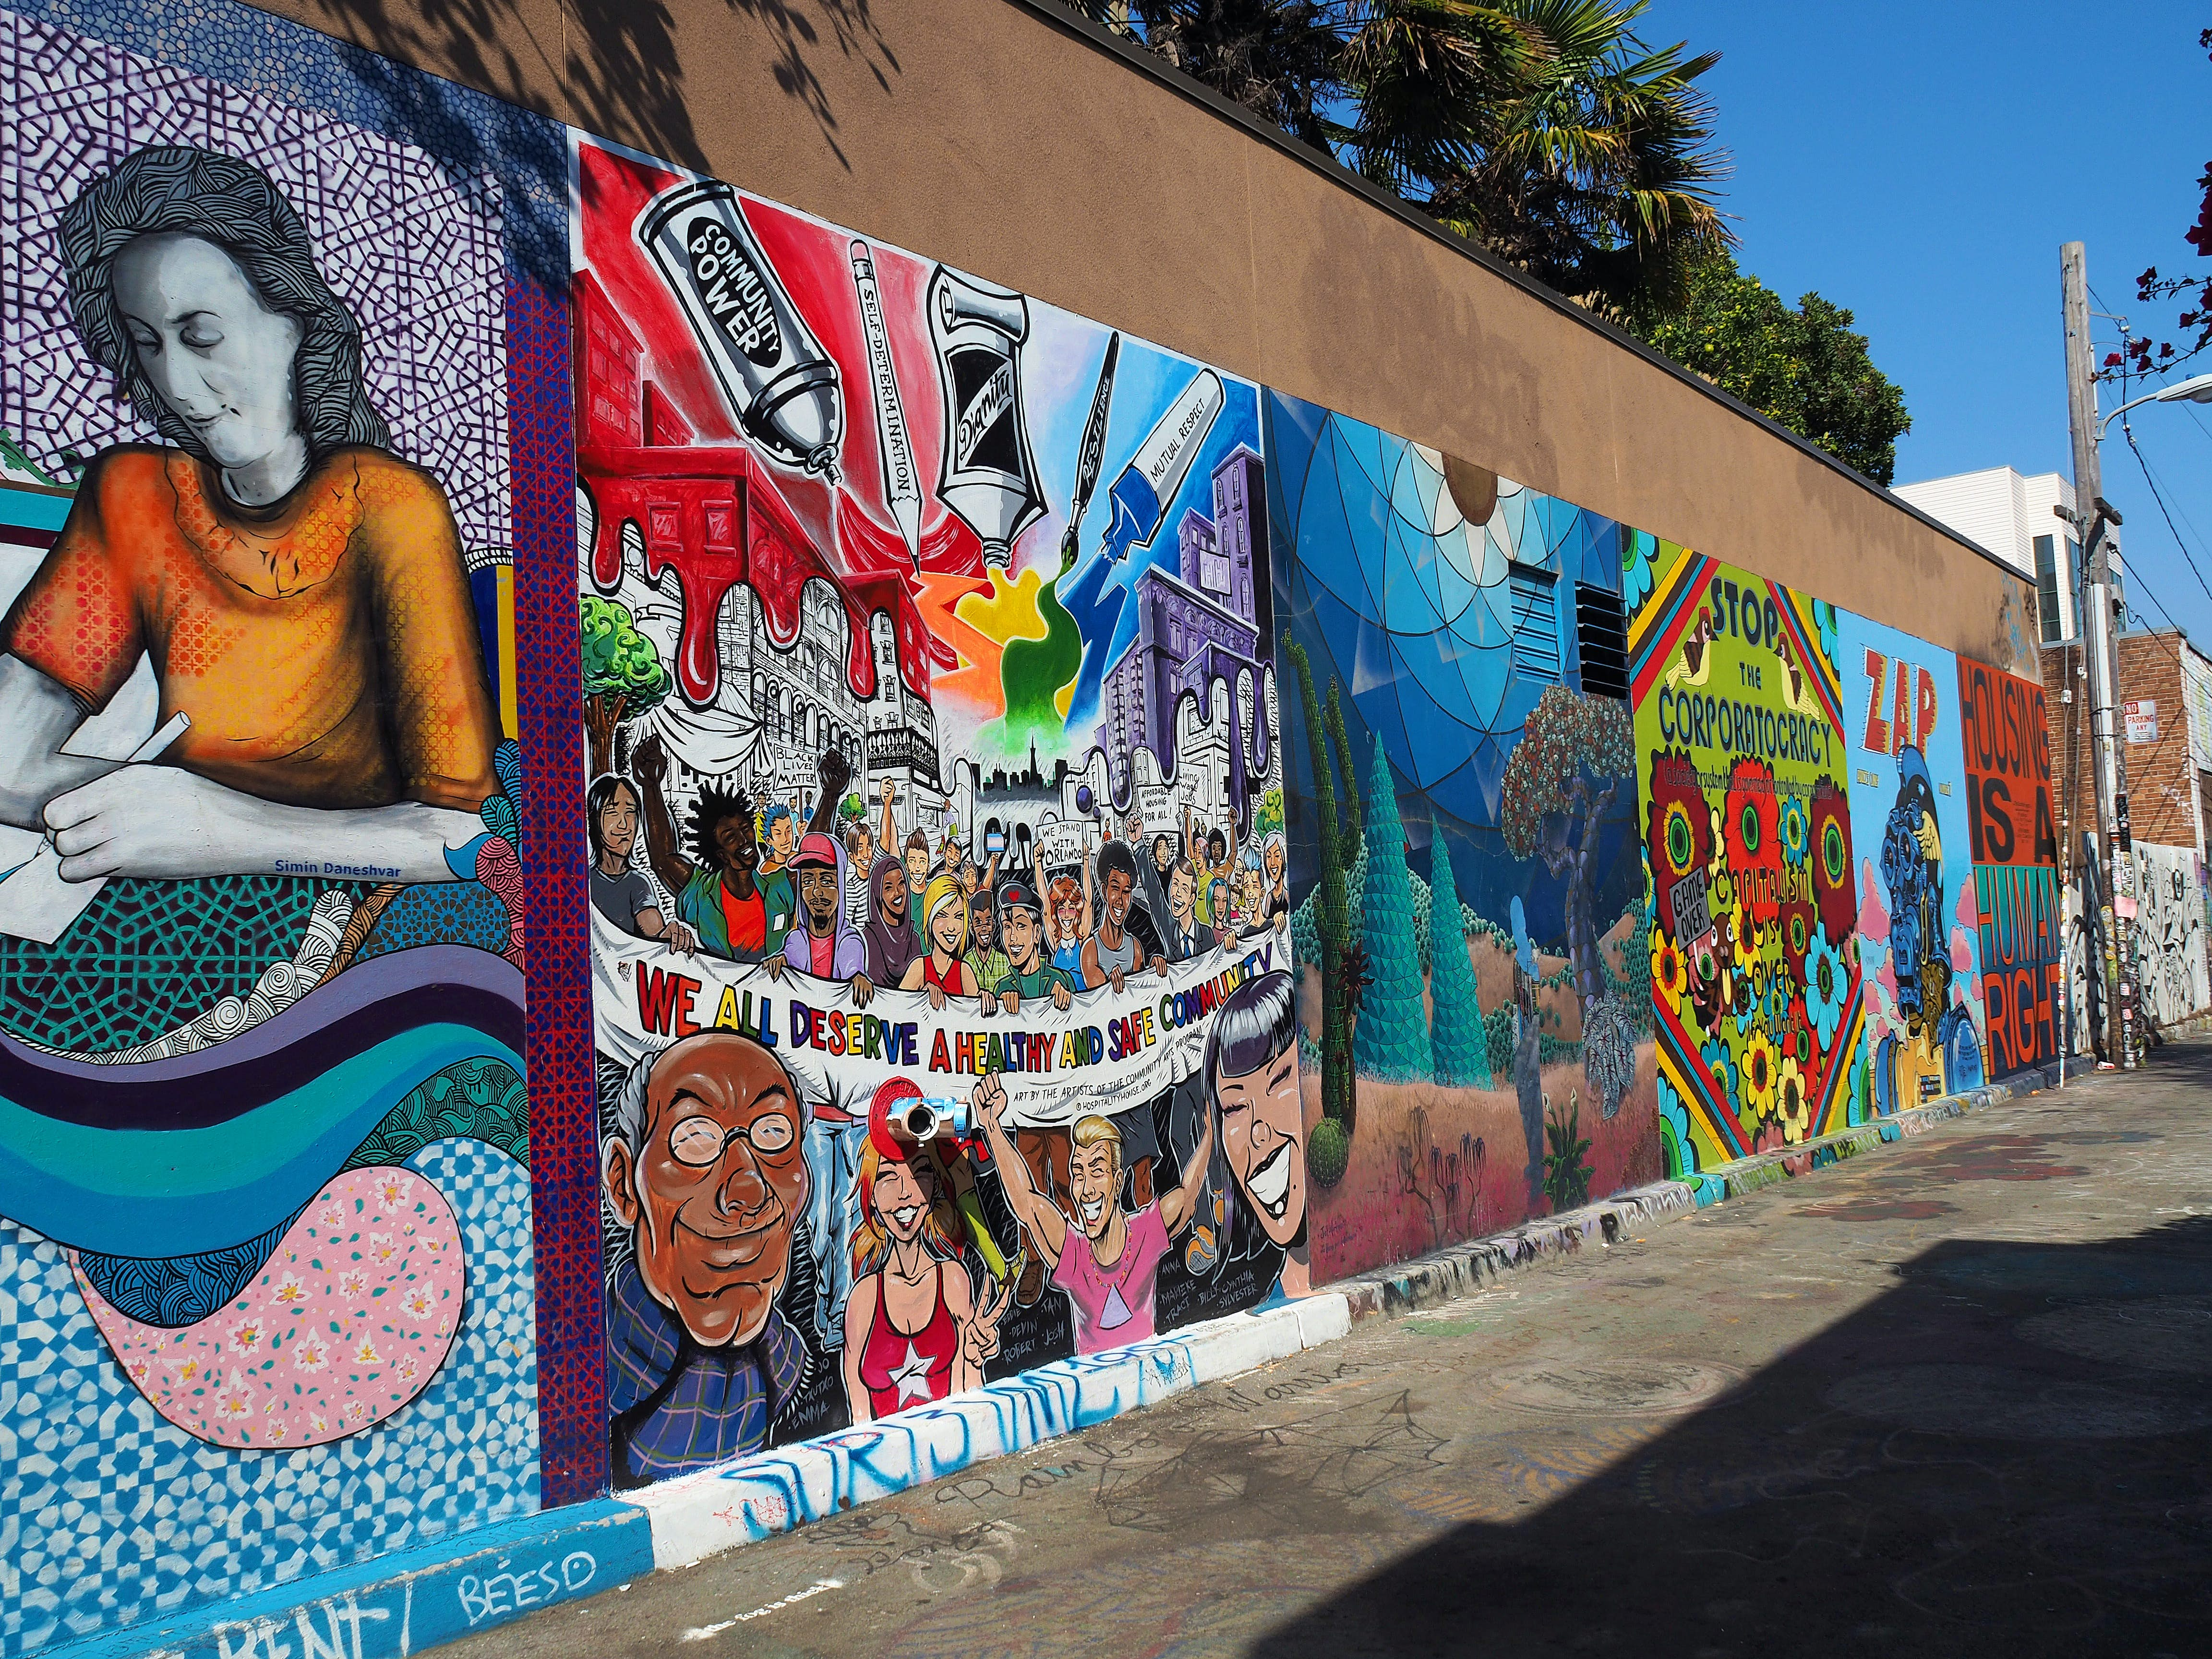 Colorful Murals in Clarion Alley, Mission District, San Francisco, California